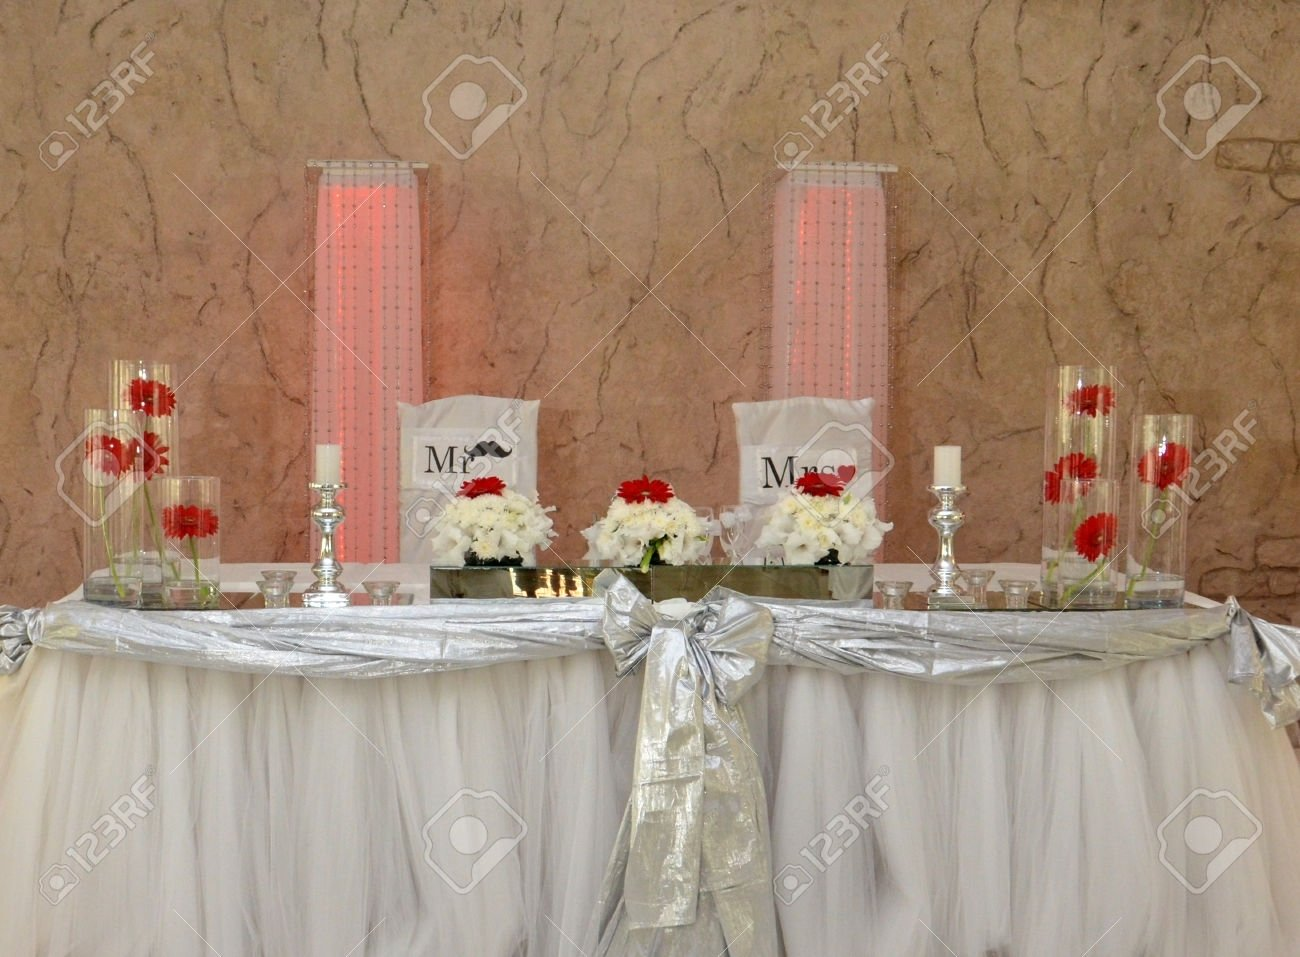 10 Lovable Bride And Groom Table Decoration Ideas amazing bride and groom table decor decorating ideas contemporary 2020